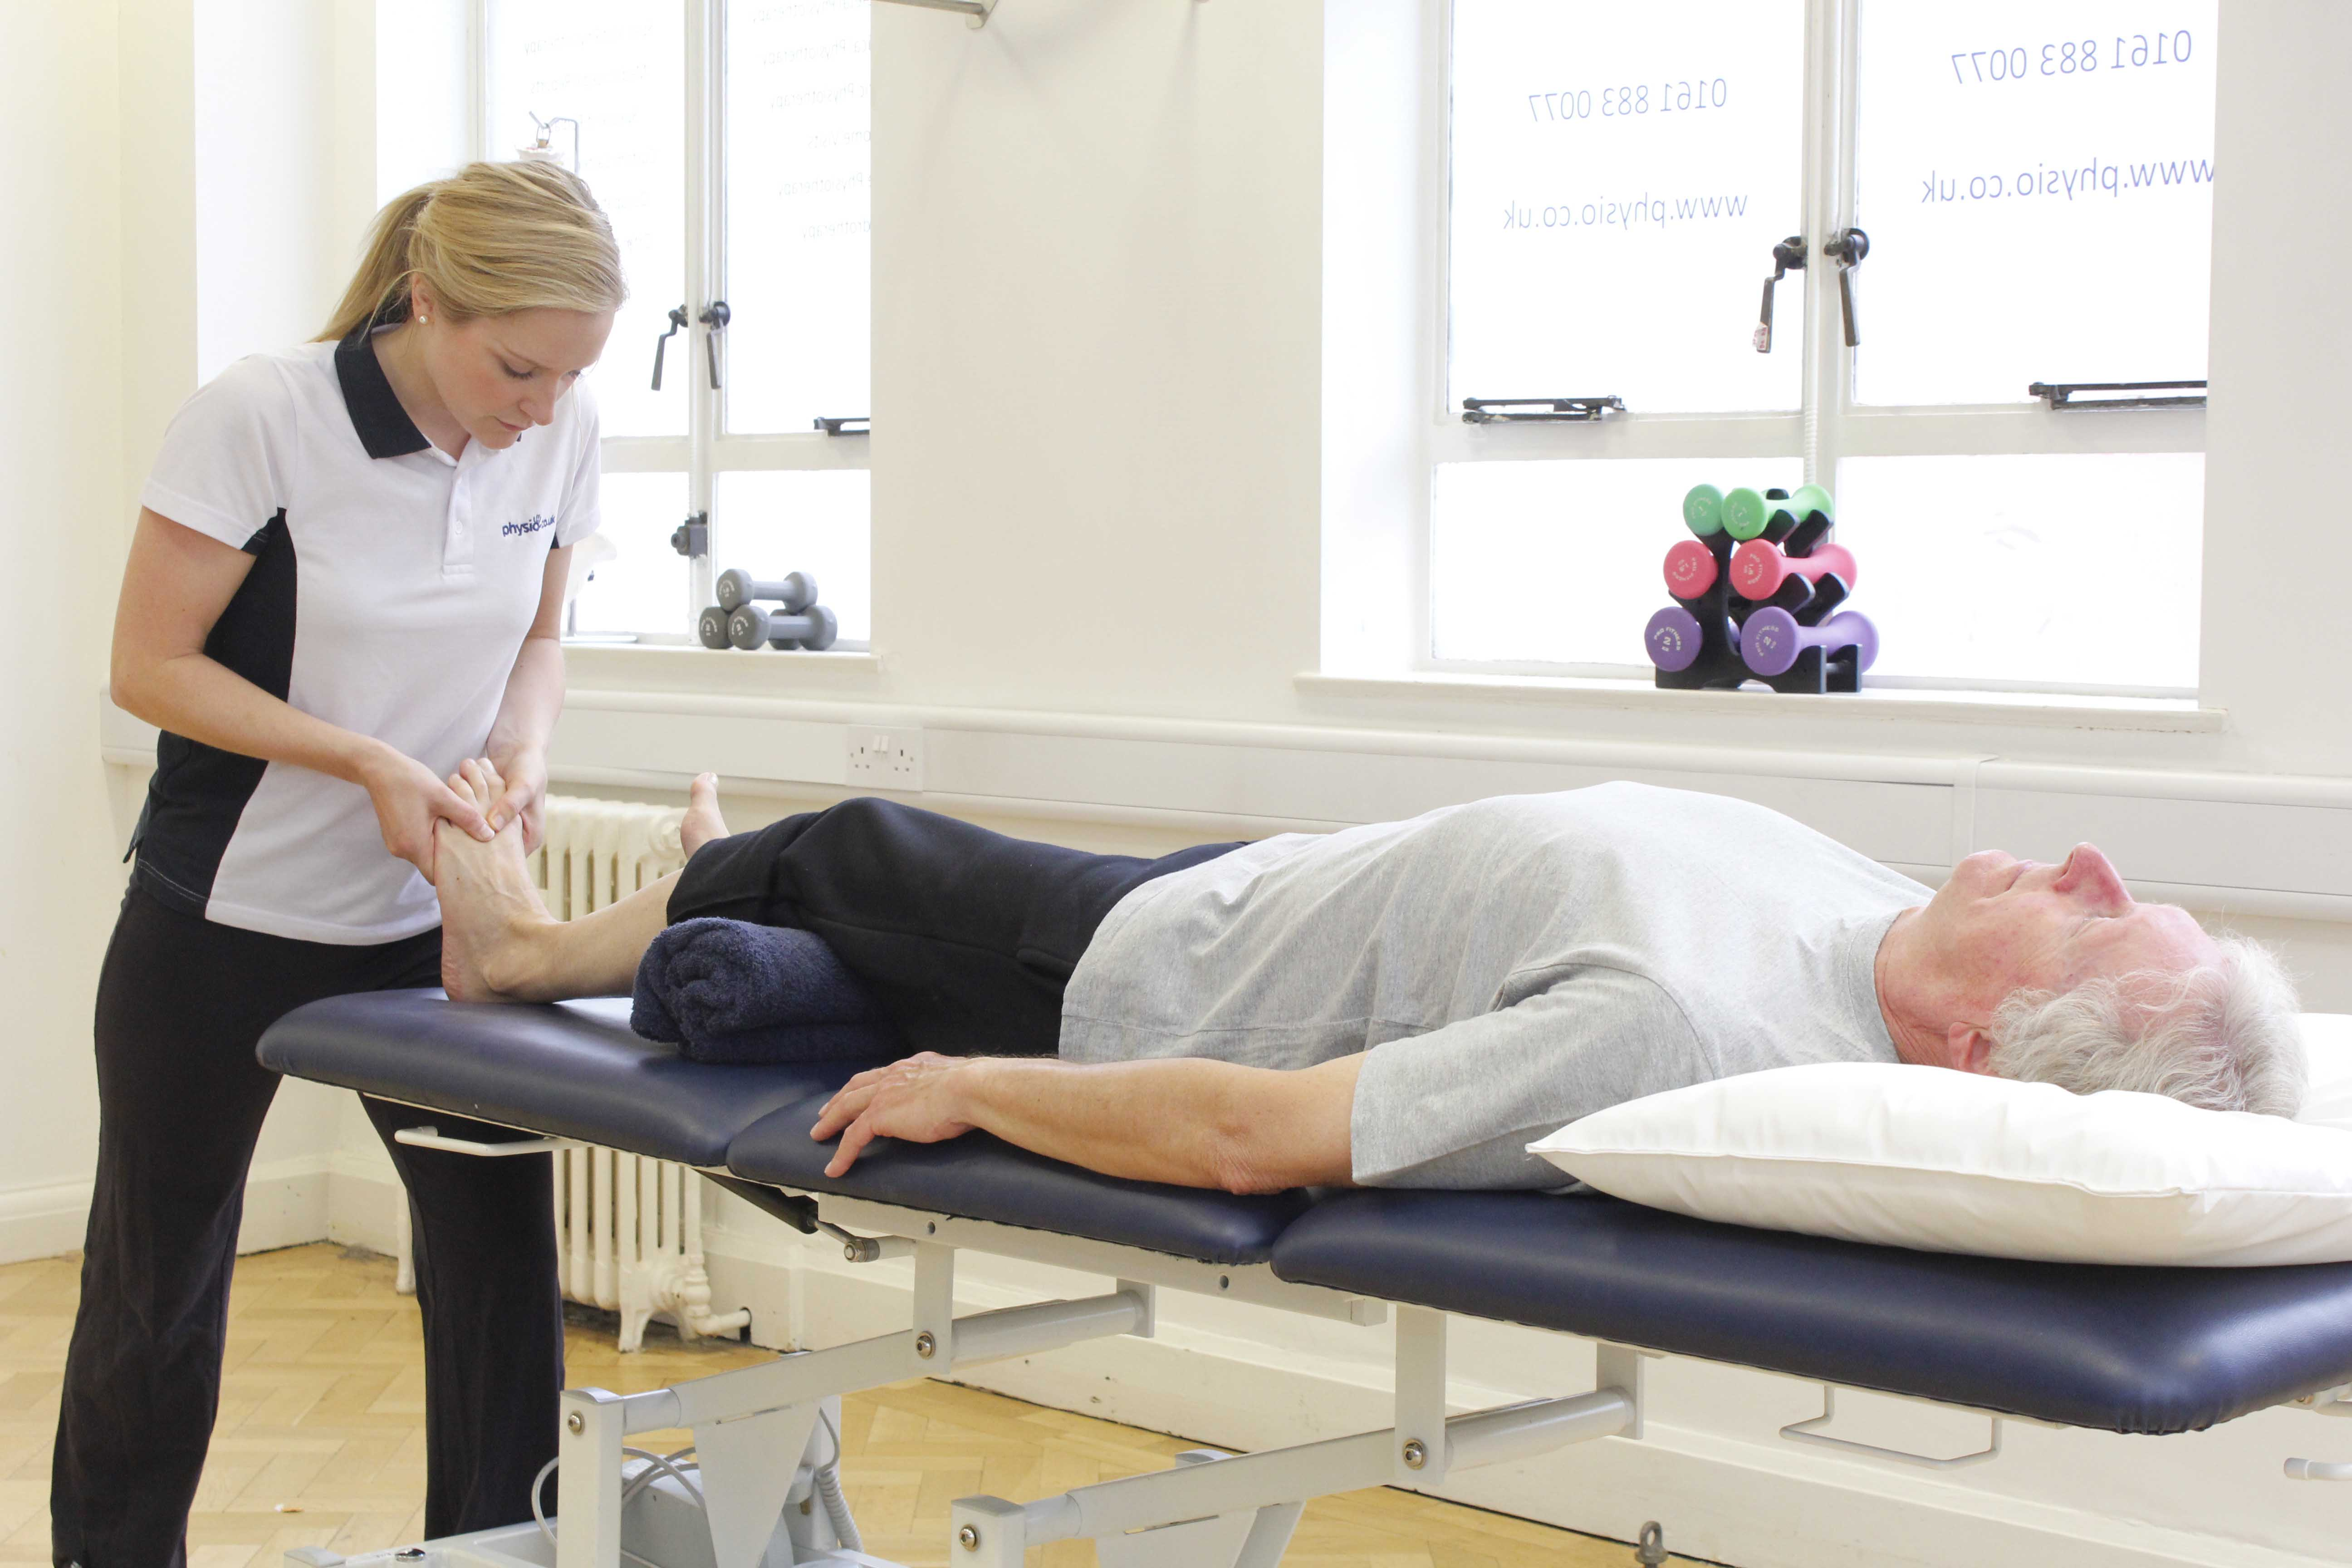 Massage and mobilisation exercises of the foot and ankle to relieve symptoms of pain and stiffness